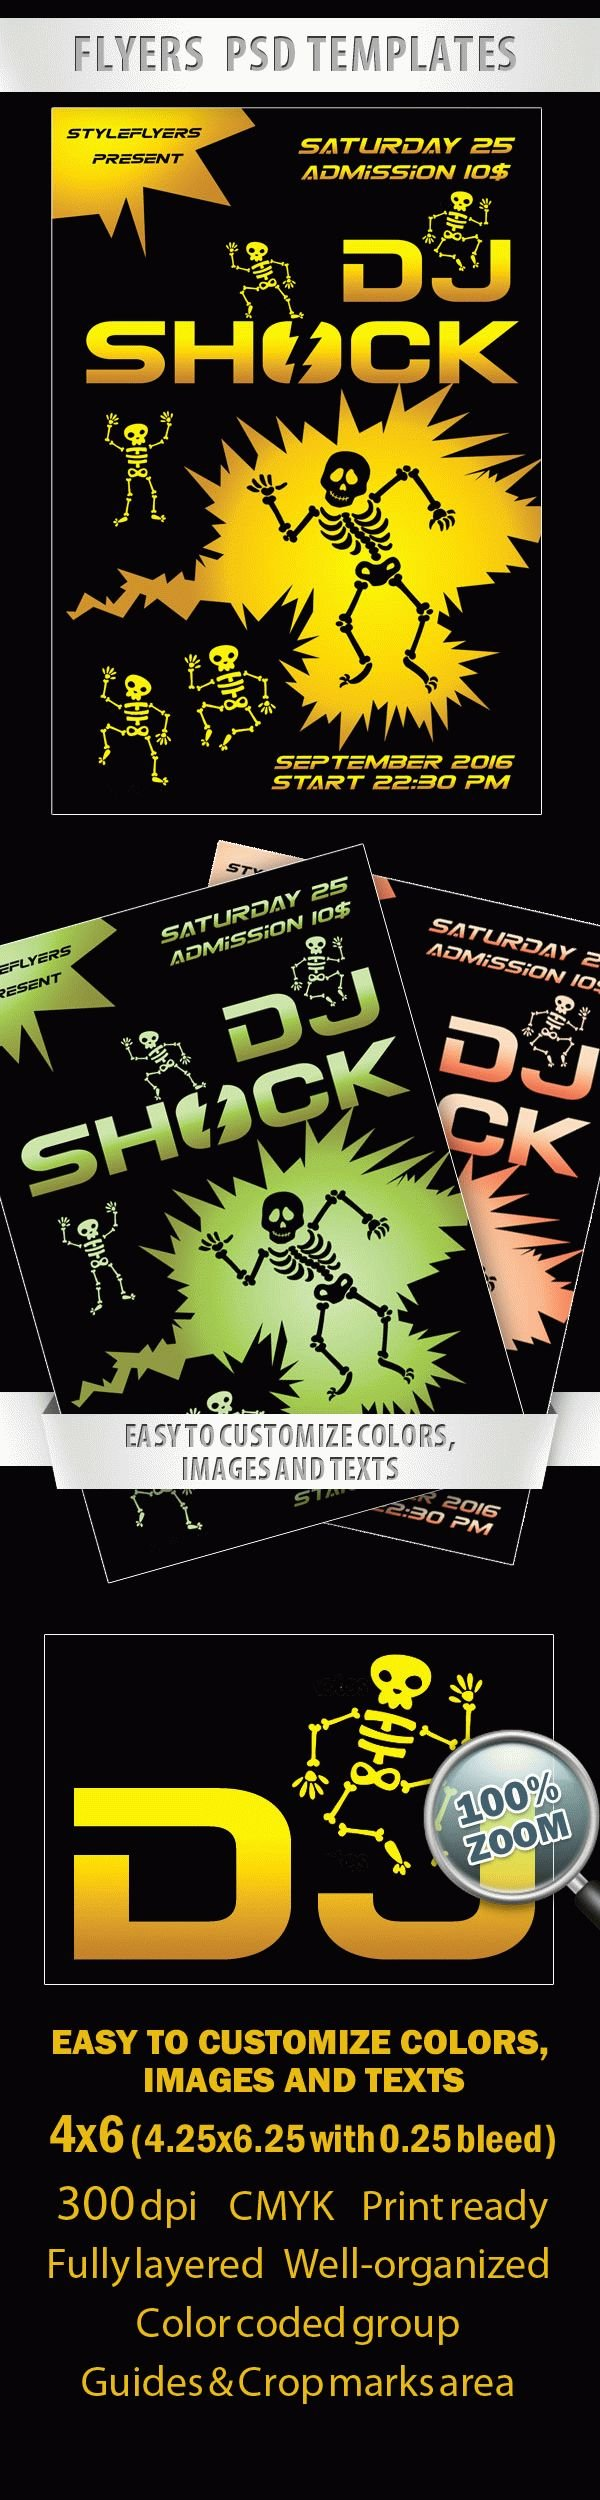 Dj Shock Flyer